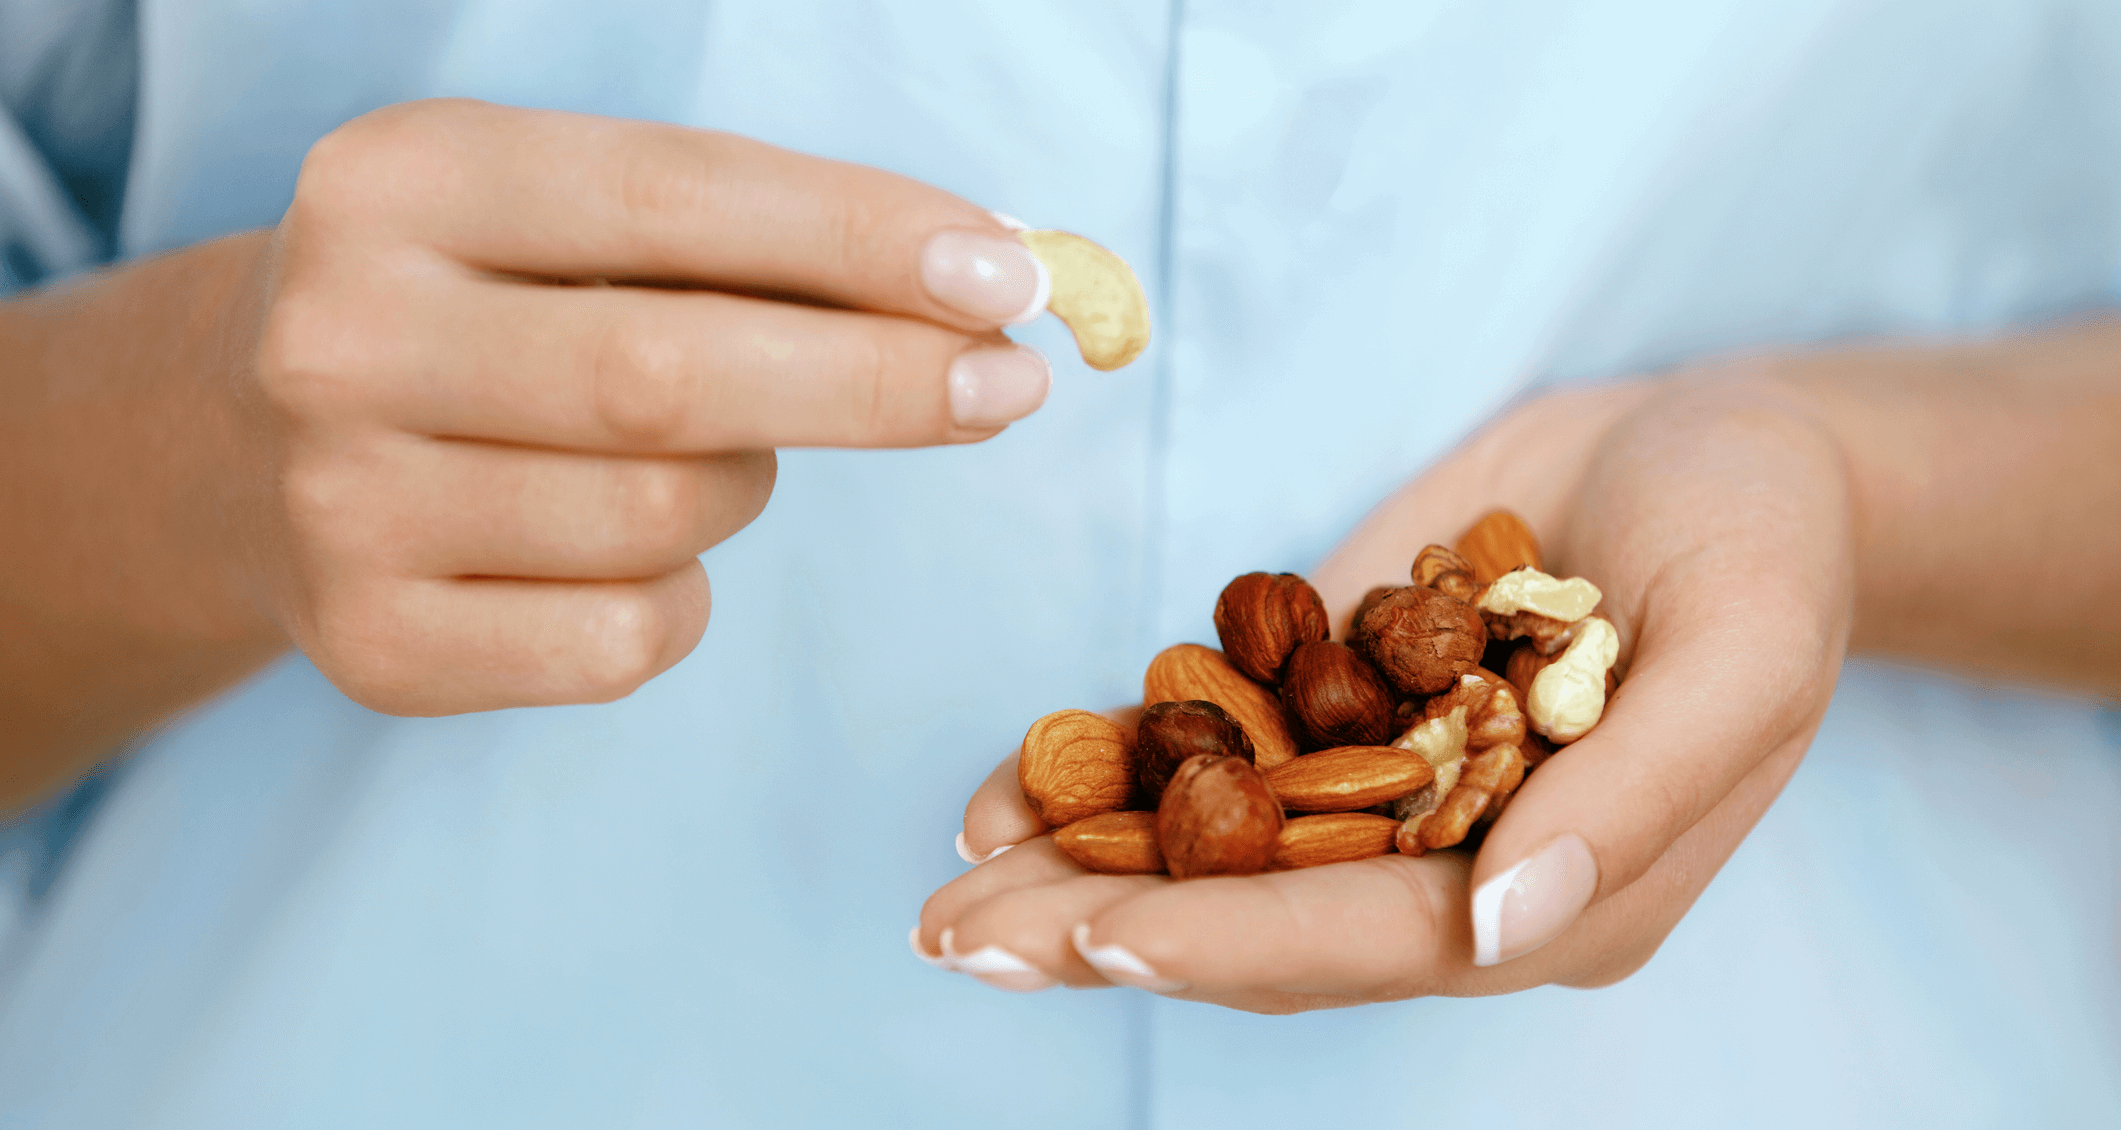 Woman's hands with nuts